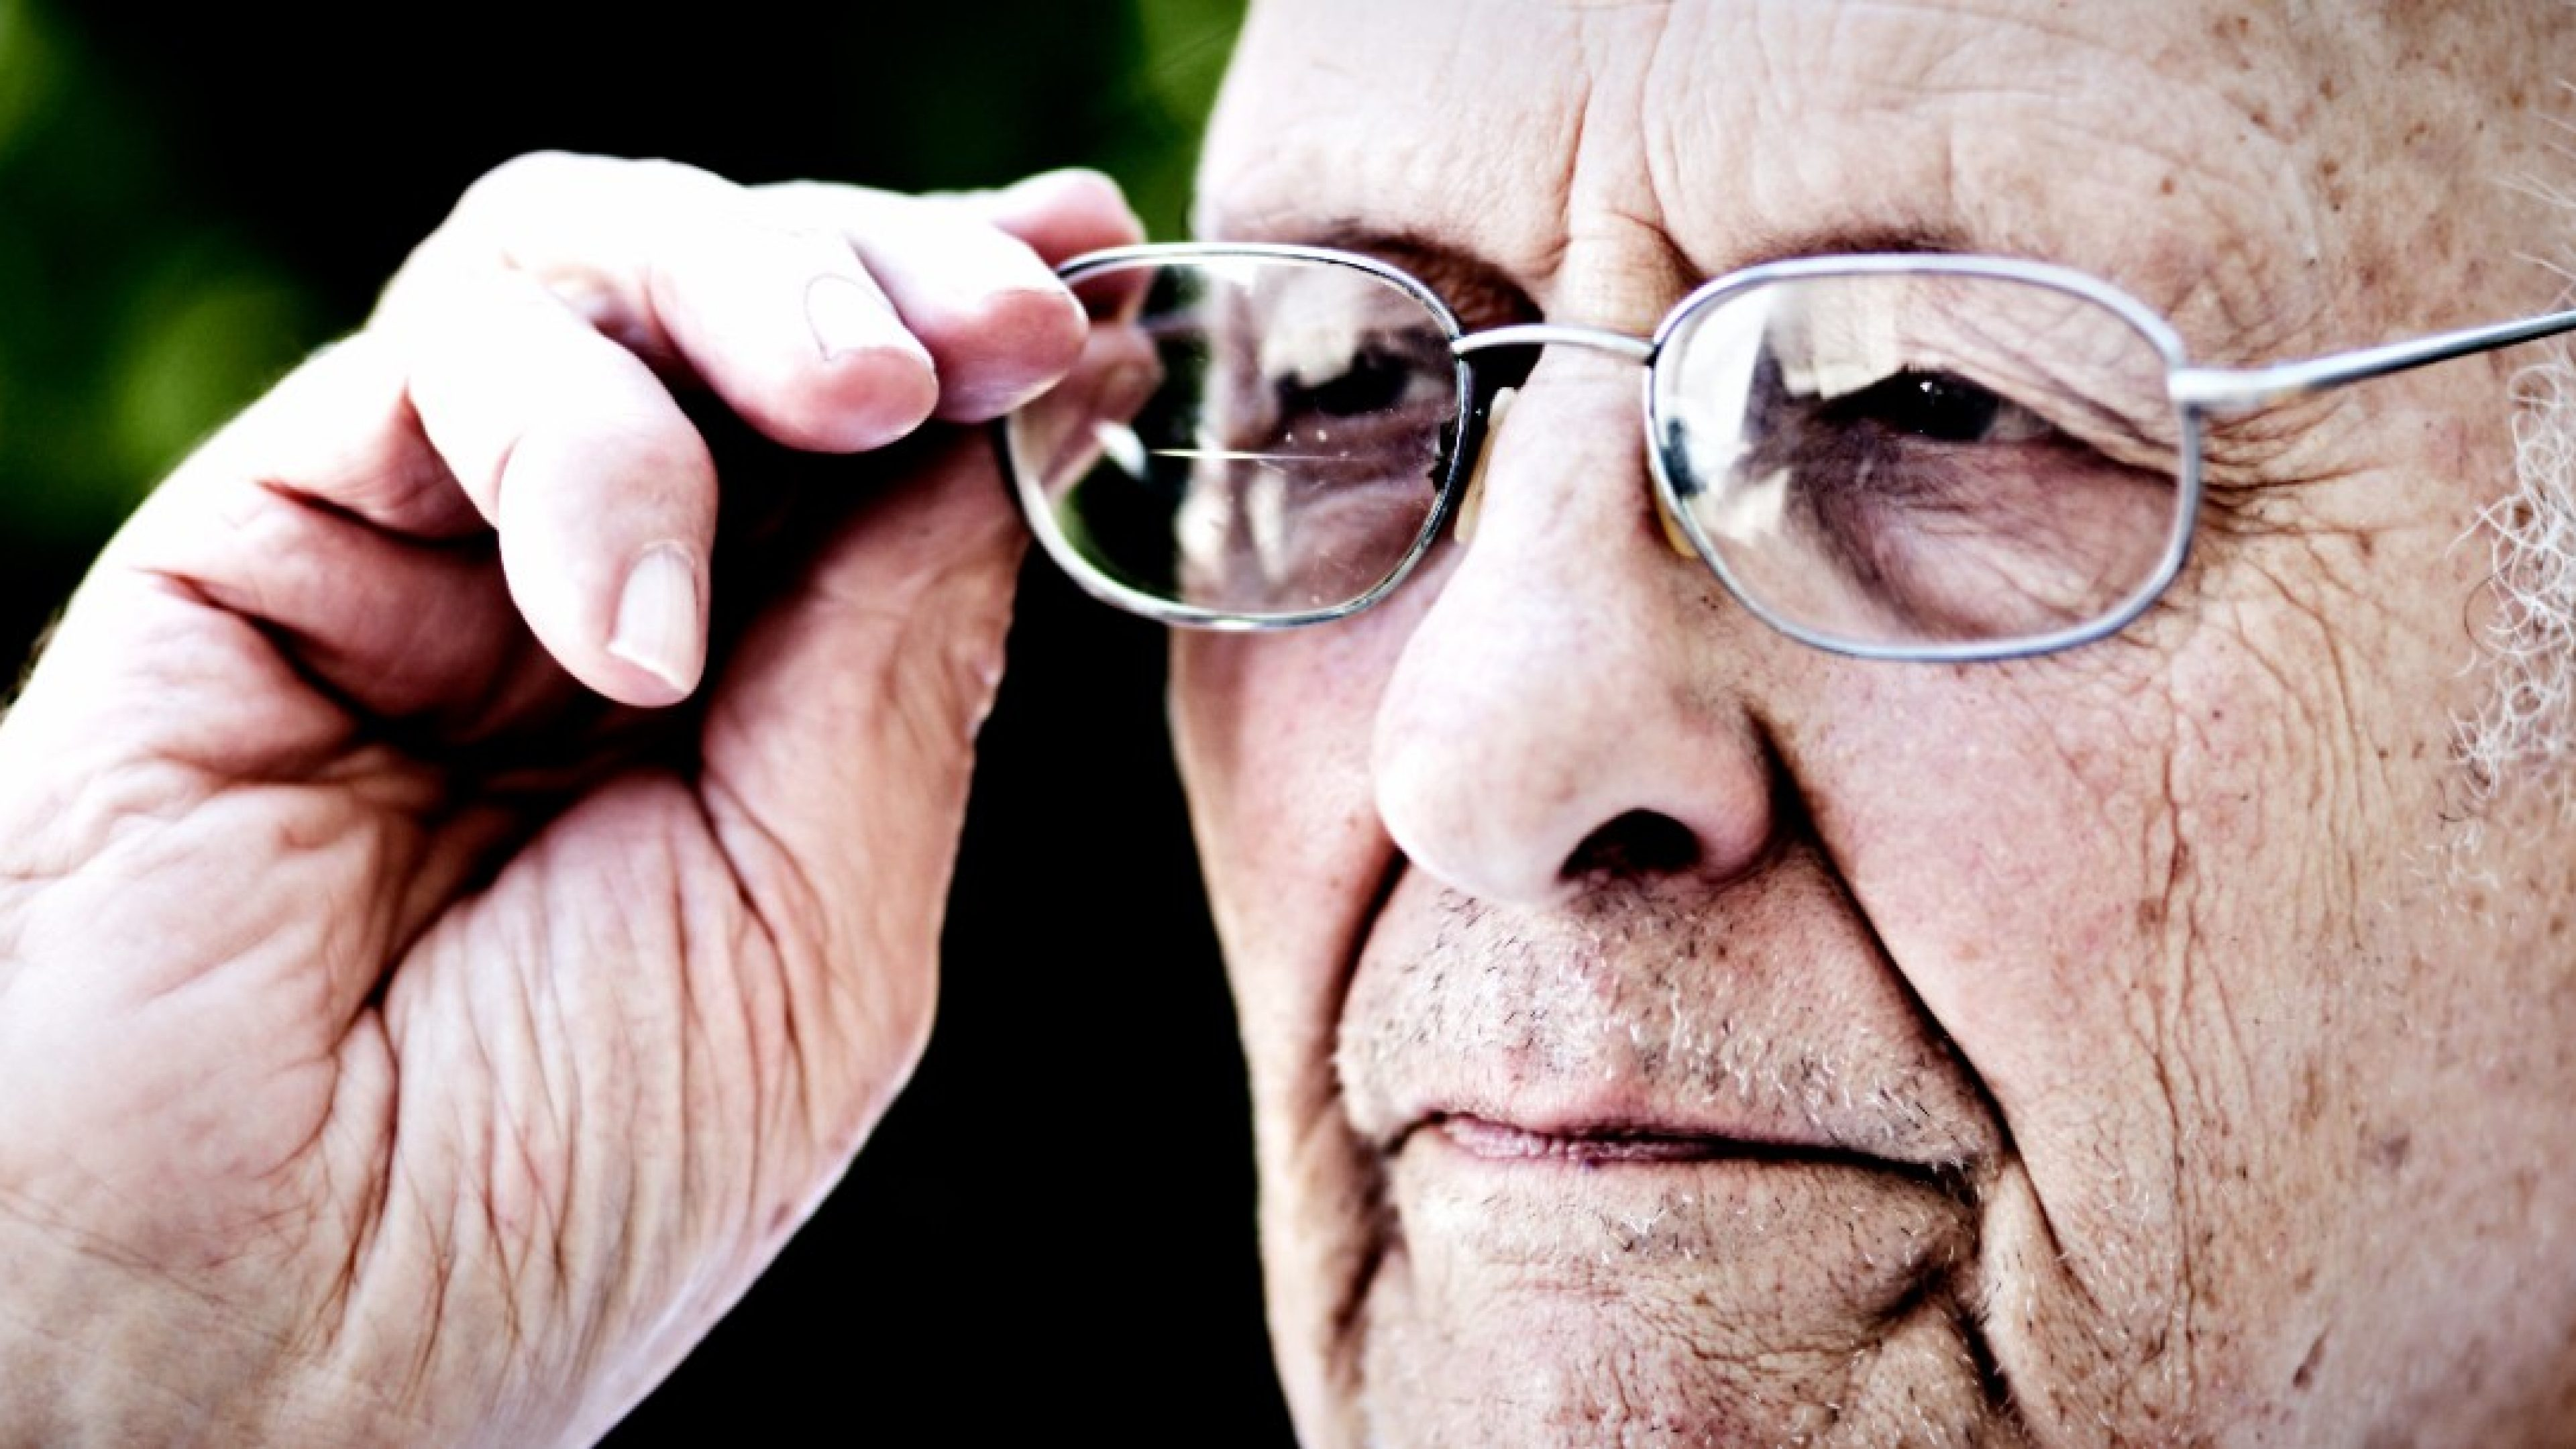 This 90 year old man adjusts his eyeglasses as he stands in his garden, looking serious.